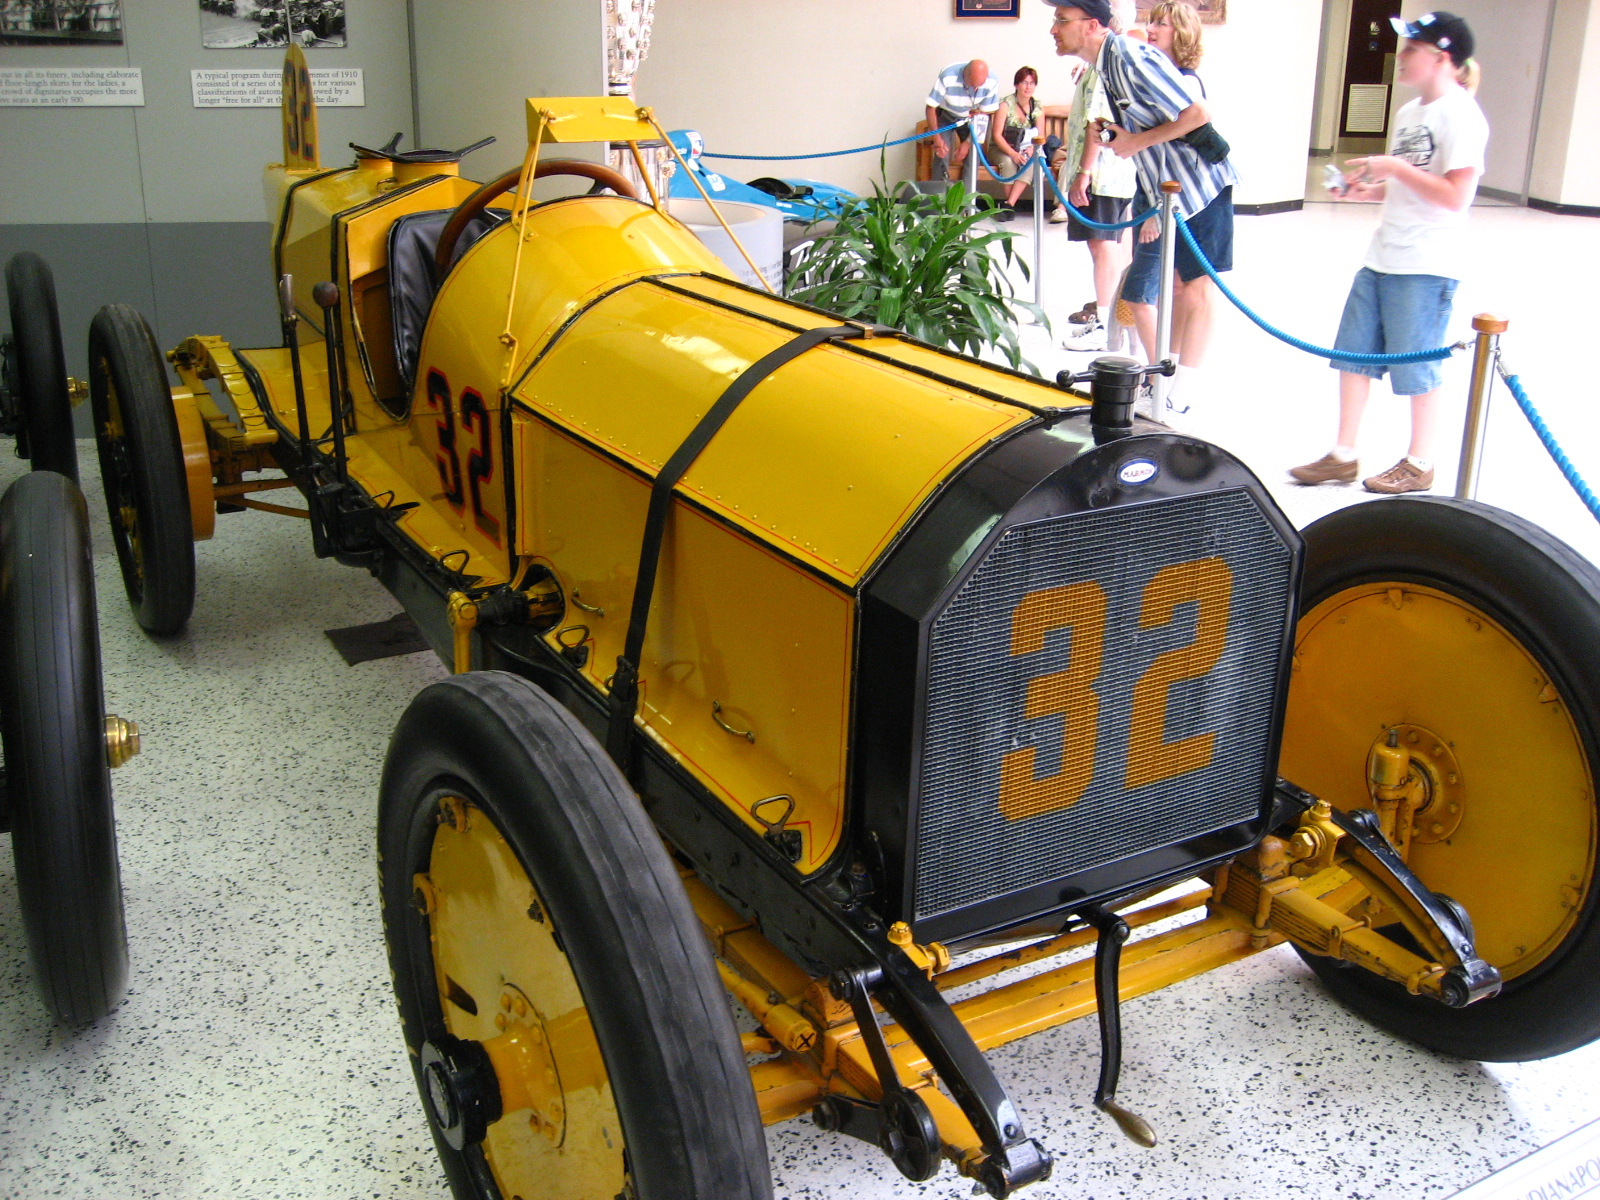 Ray Harroun's Marmon Wasp which won the 1911 Indianapolis 500